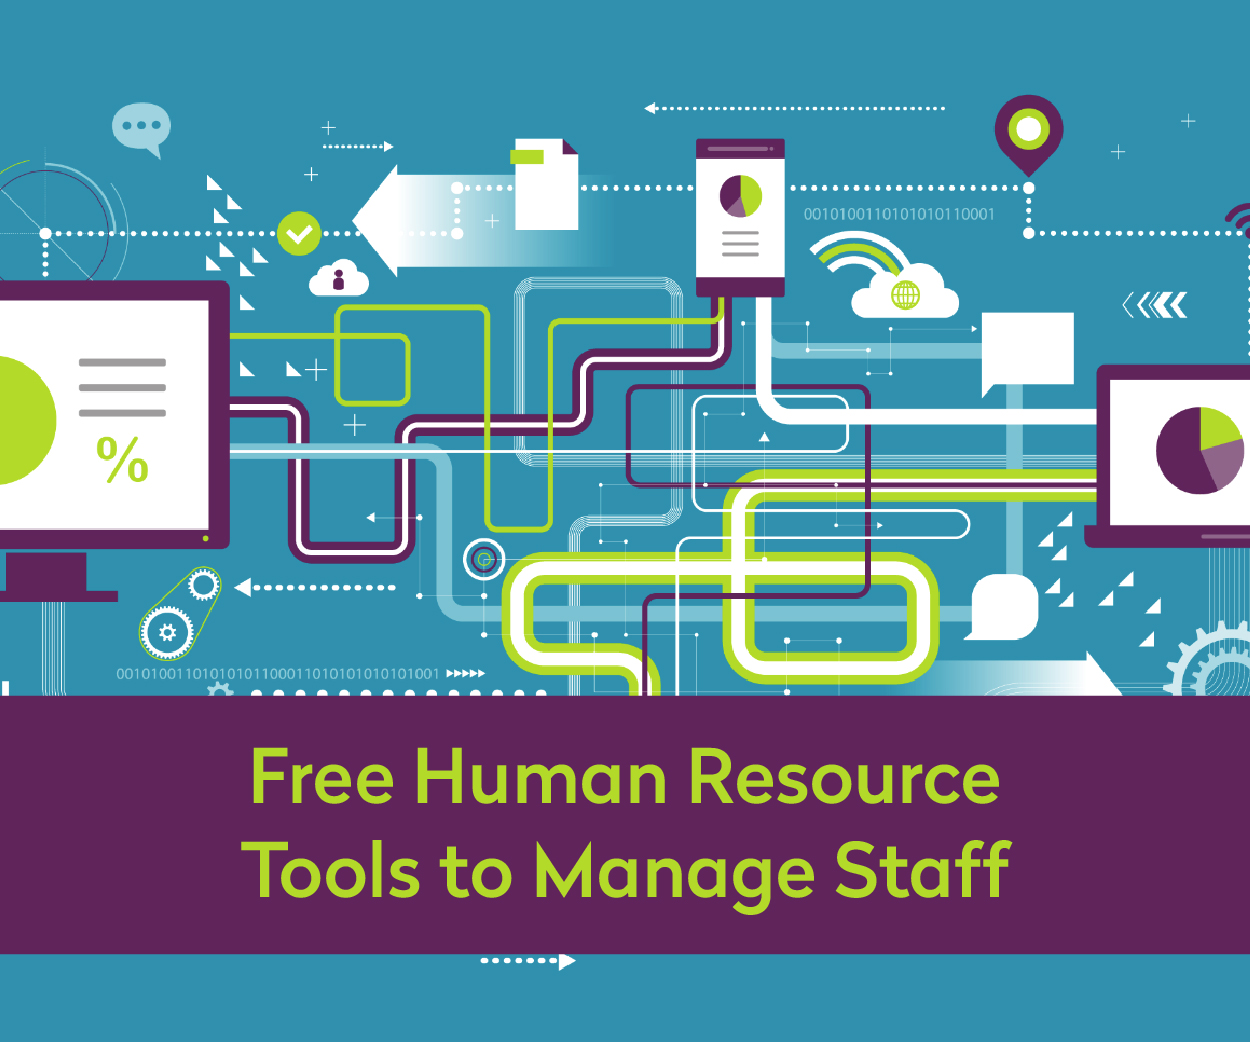 Free Human Resource Tools to Manage Staff